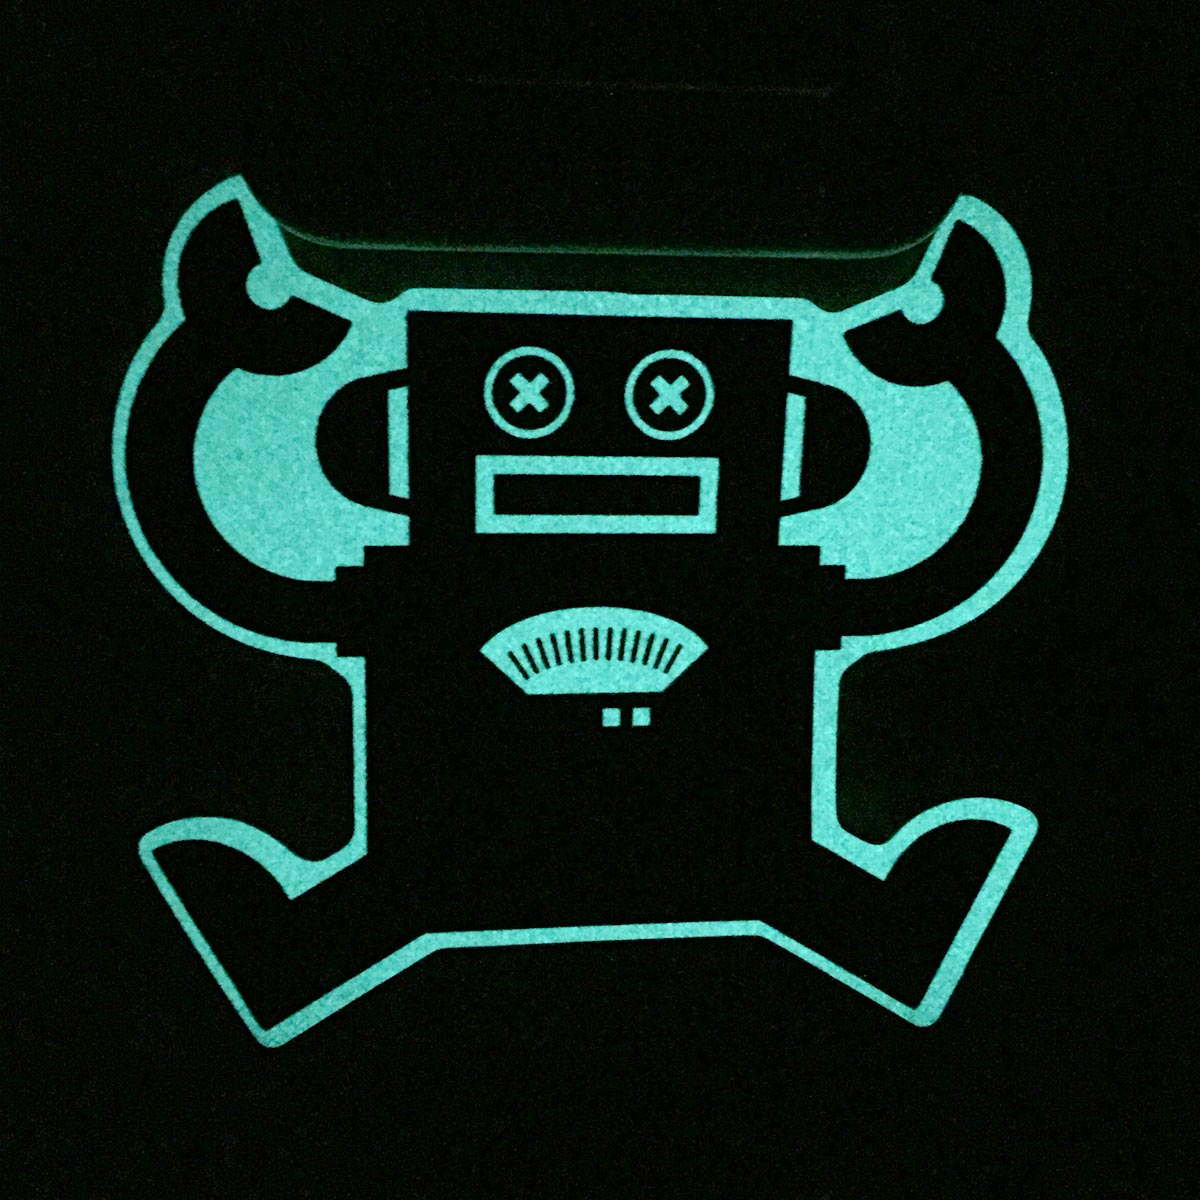 Switch Sticker Phosphorescent Type - Glowing